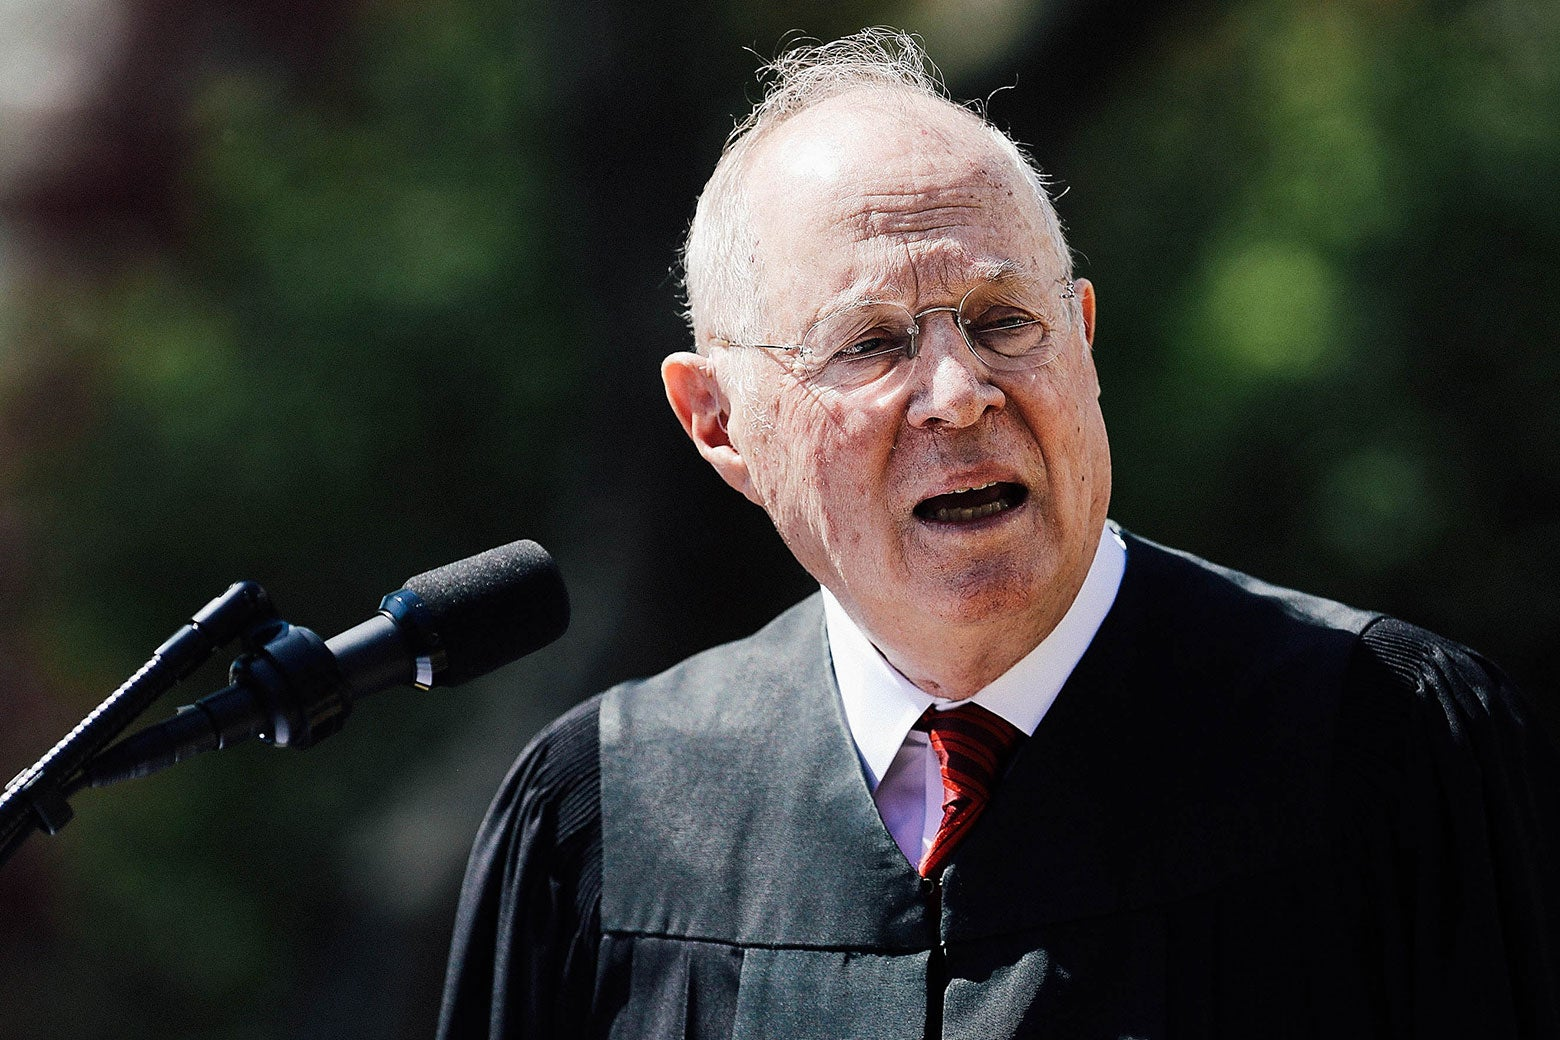 Supreme Court Justice Anthony Kennedy in the Rose Garden at the White House.